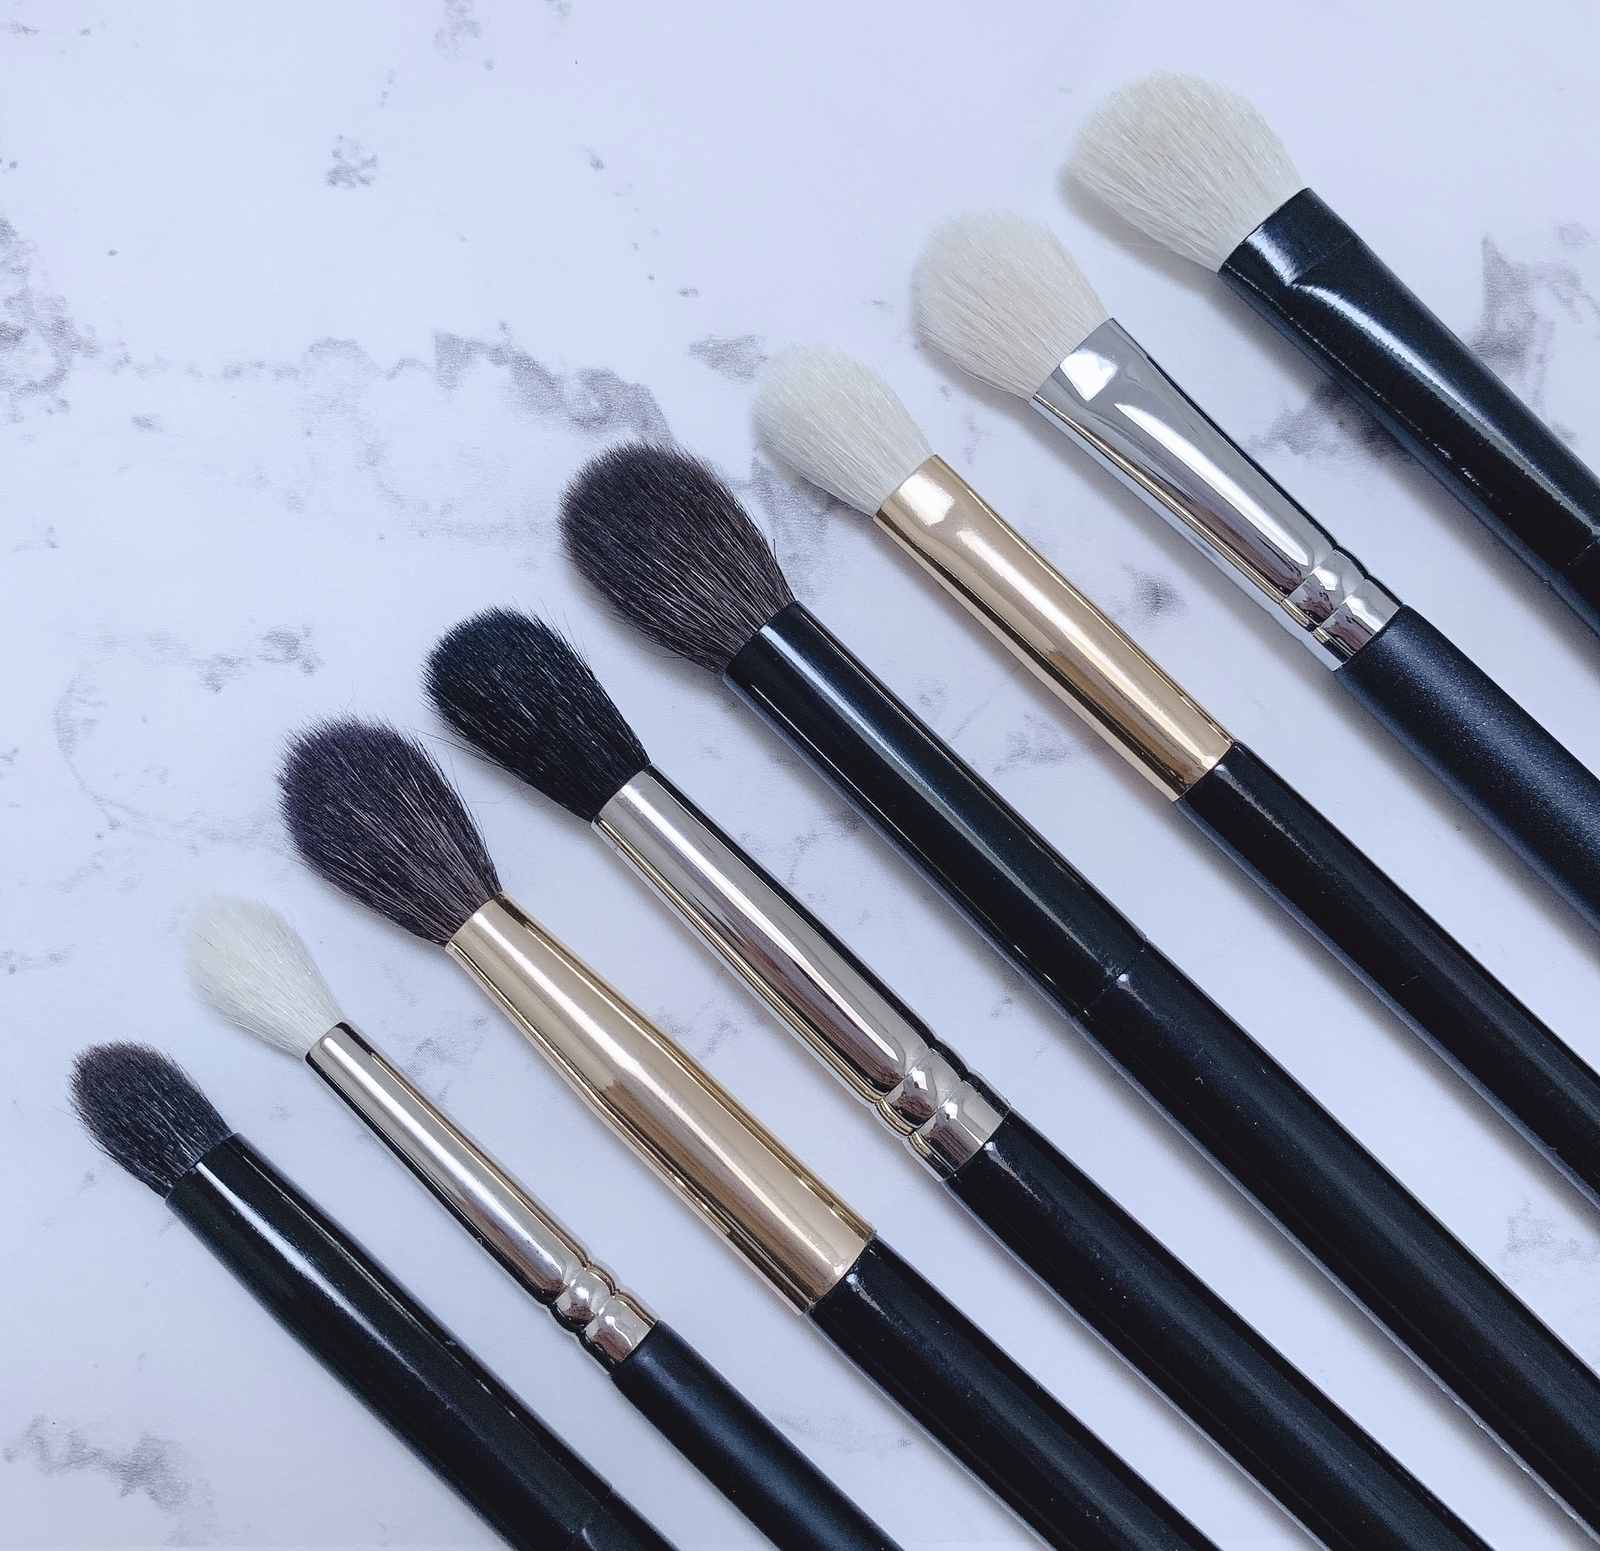 Primary image for R&M 8pc EYE MAKEUP BRUSHES SET